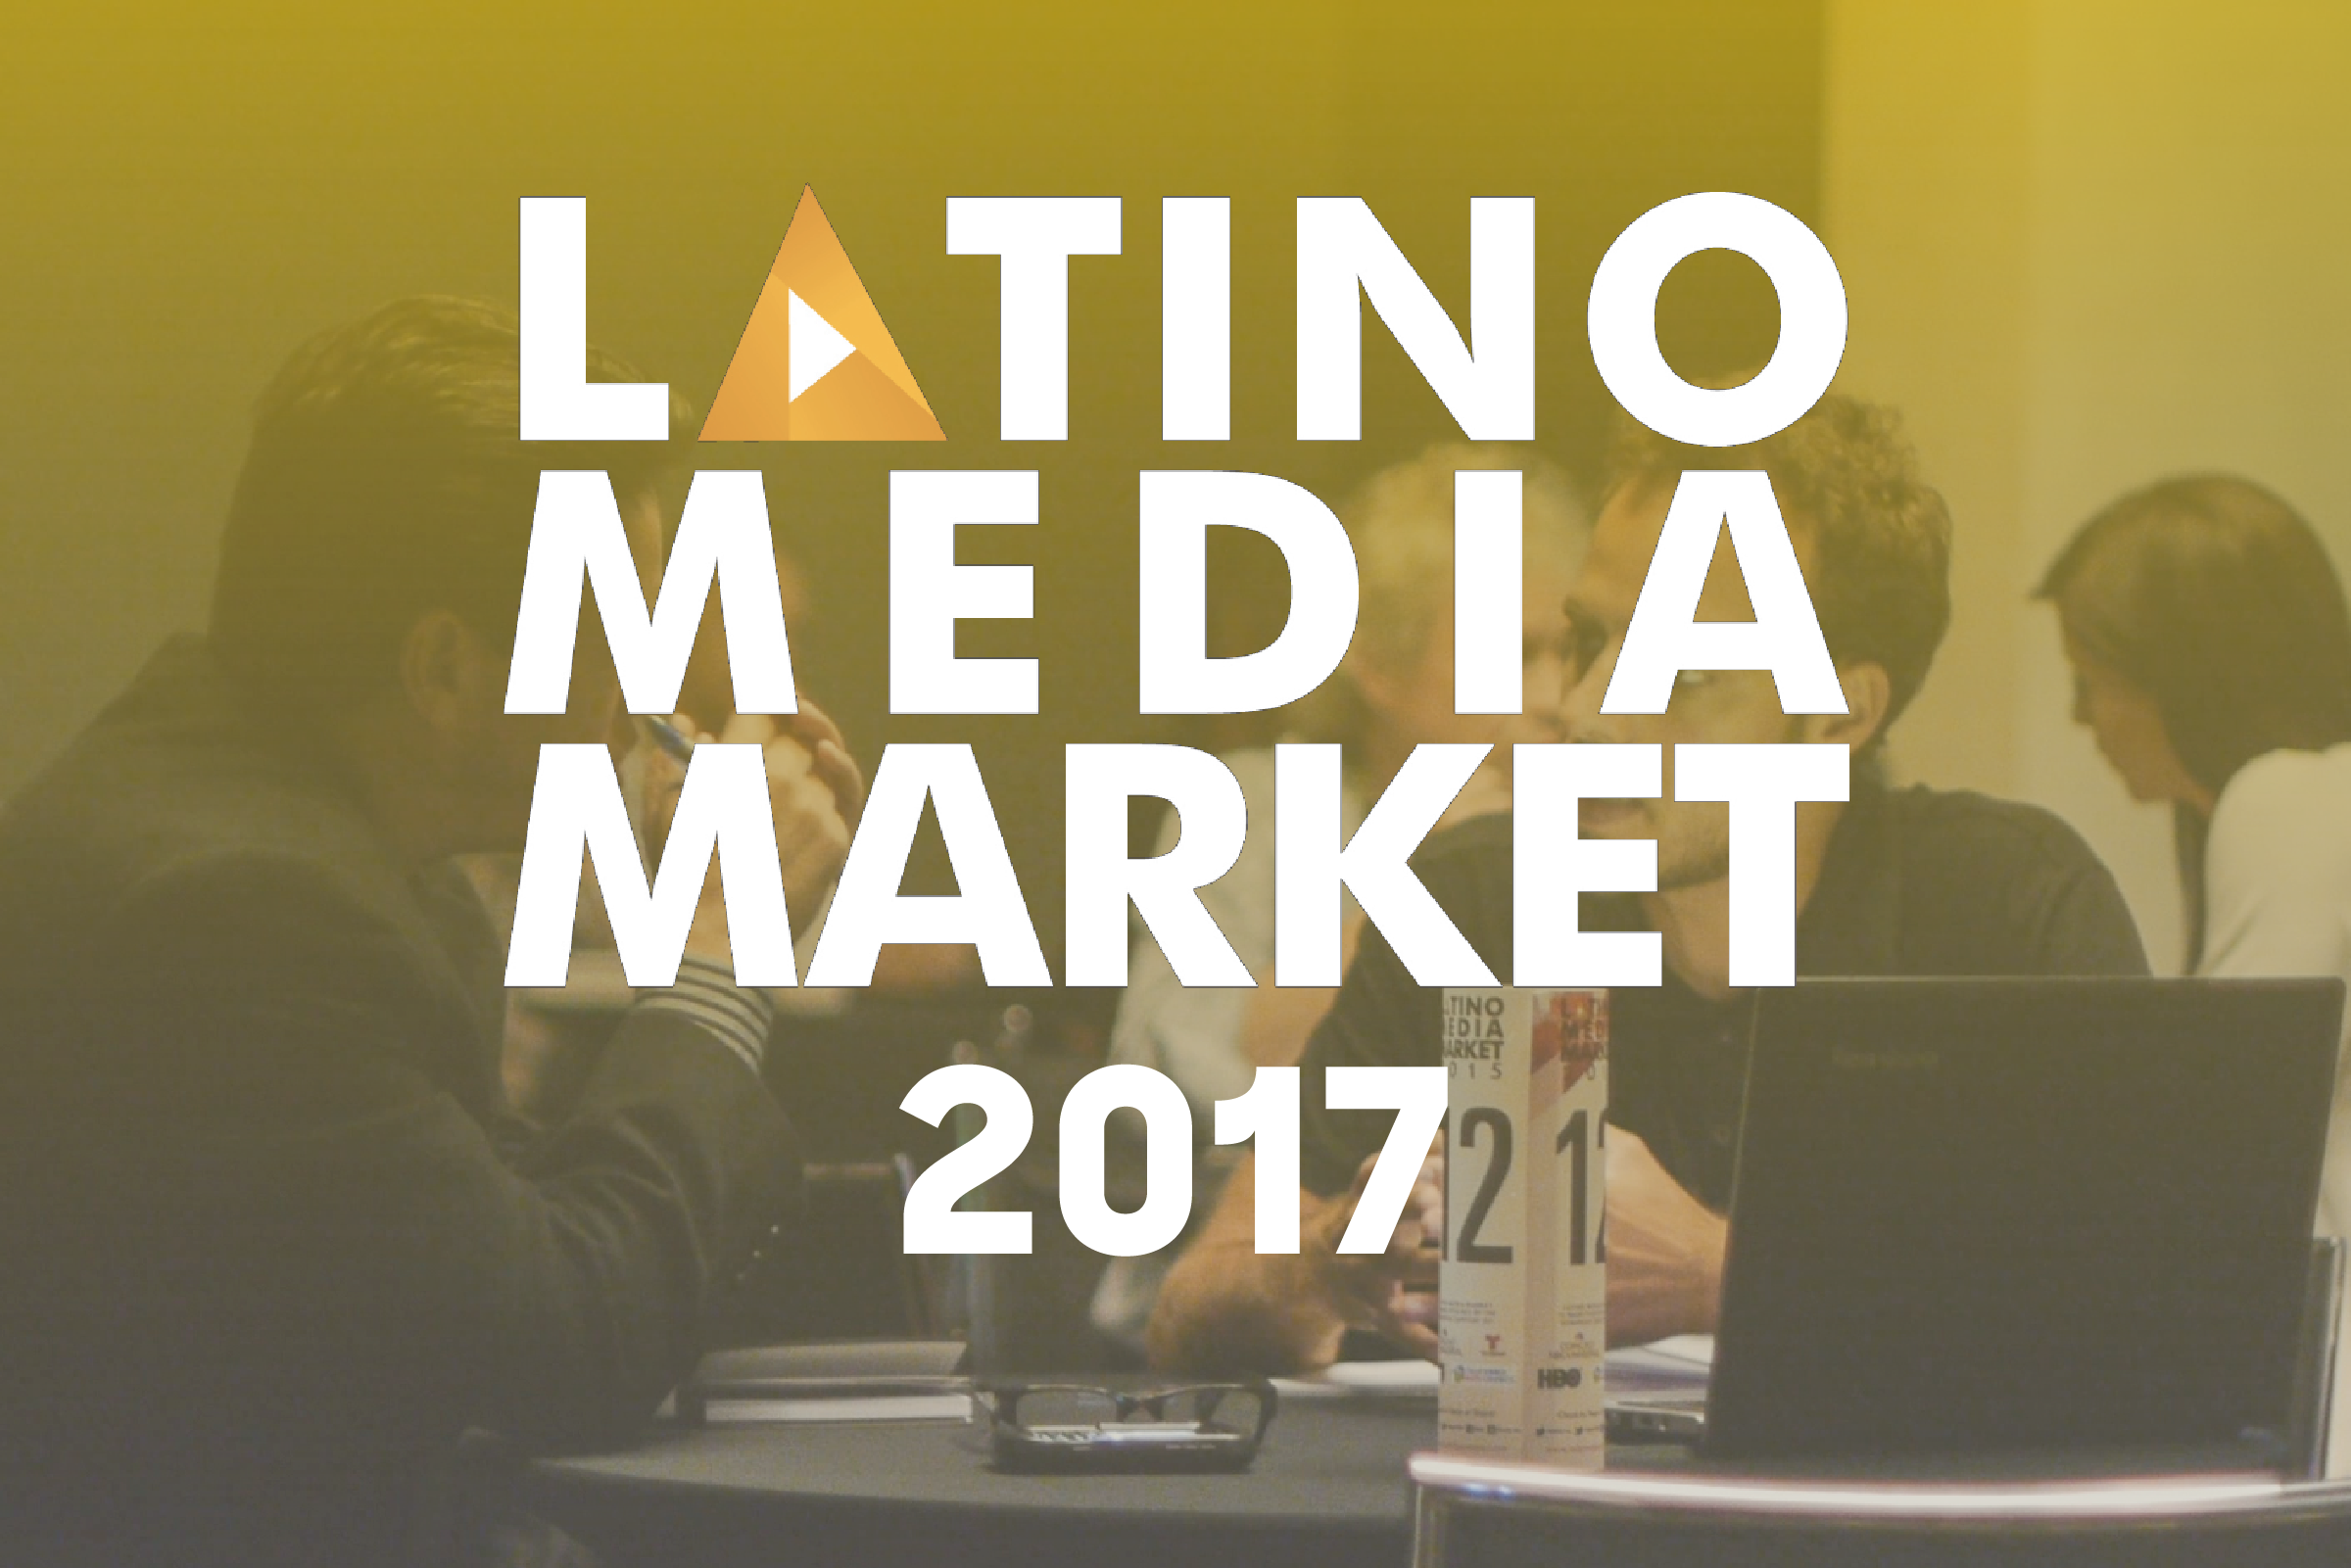 Latino_Media_Market_2017_logo.png